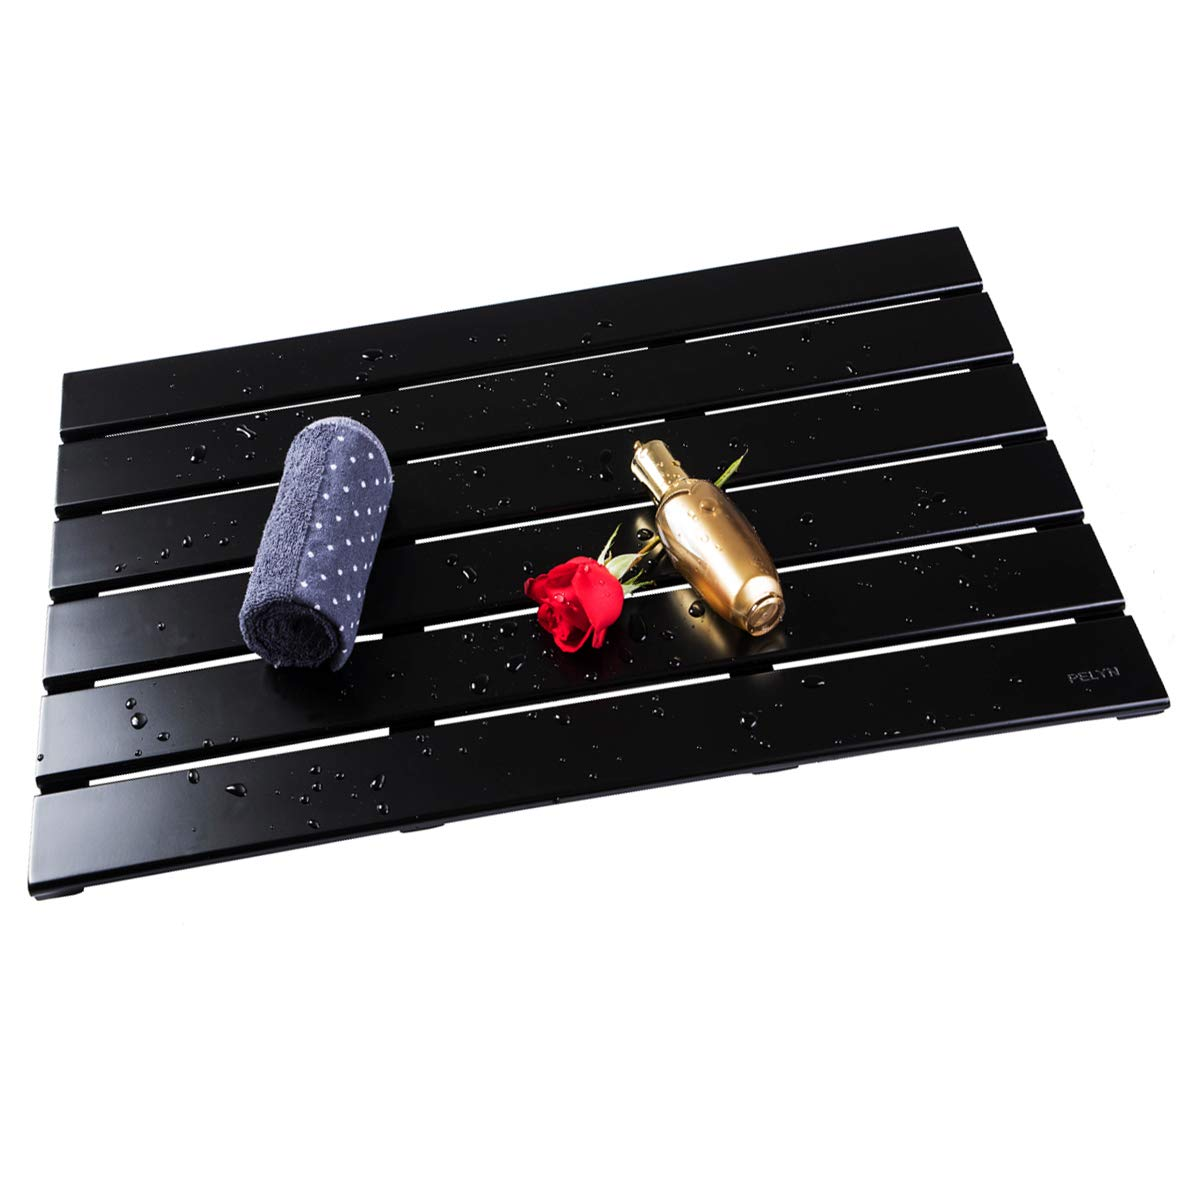 PELYN Bamboo Shower Bath Mat Great for Floor Bathroom Kitchen Pool Spa Outdoor and etc 31.5'' L x 18.5'' W (Black)